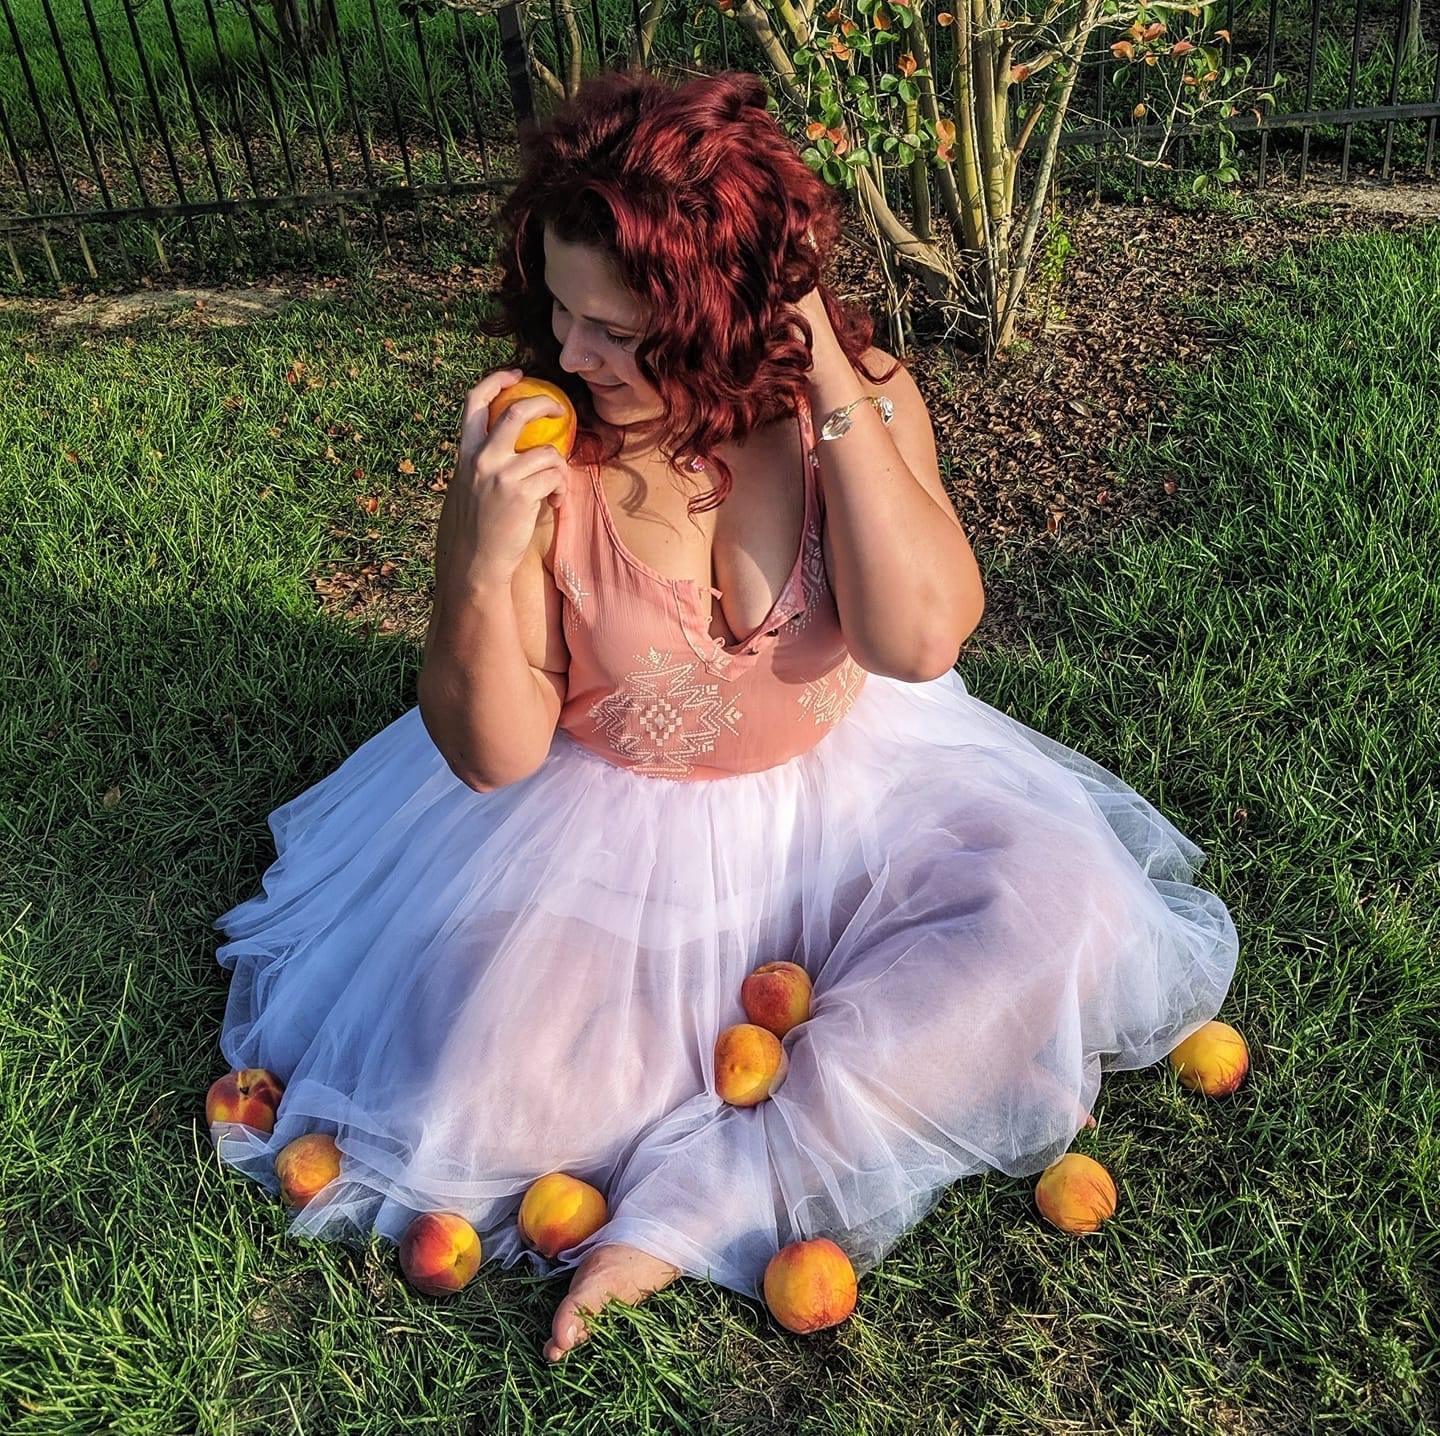 Kayla Manley - Kayla Manley is Georgia born, but currently lives in Louisiana with her husband and two dogs—she'd be more specific, but doesn't want Rachel Hollis to find her. For more content, you can follow her on instagram and twitter at: @themanleypeach